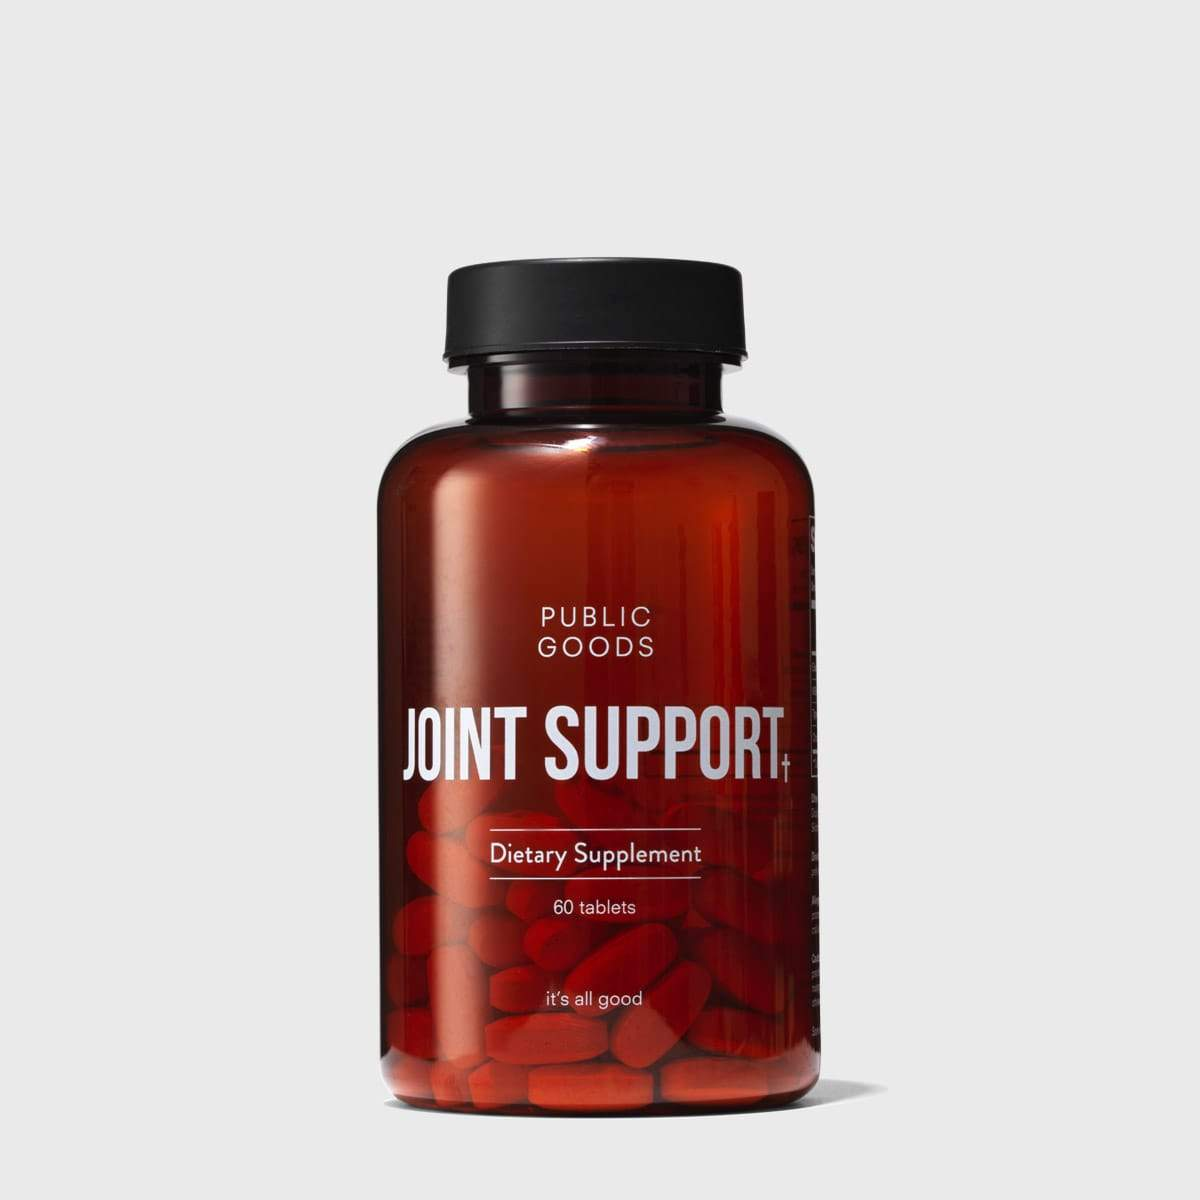 bottle of joint support supplement